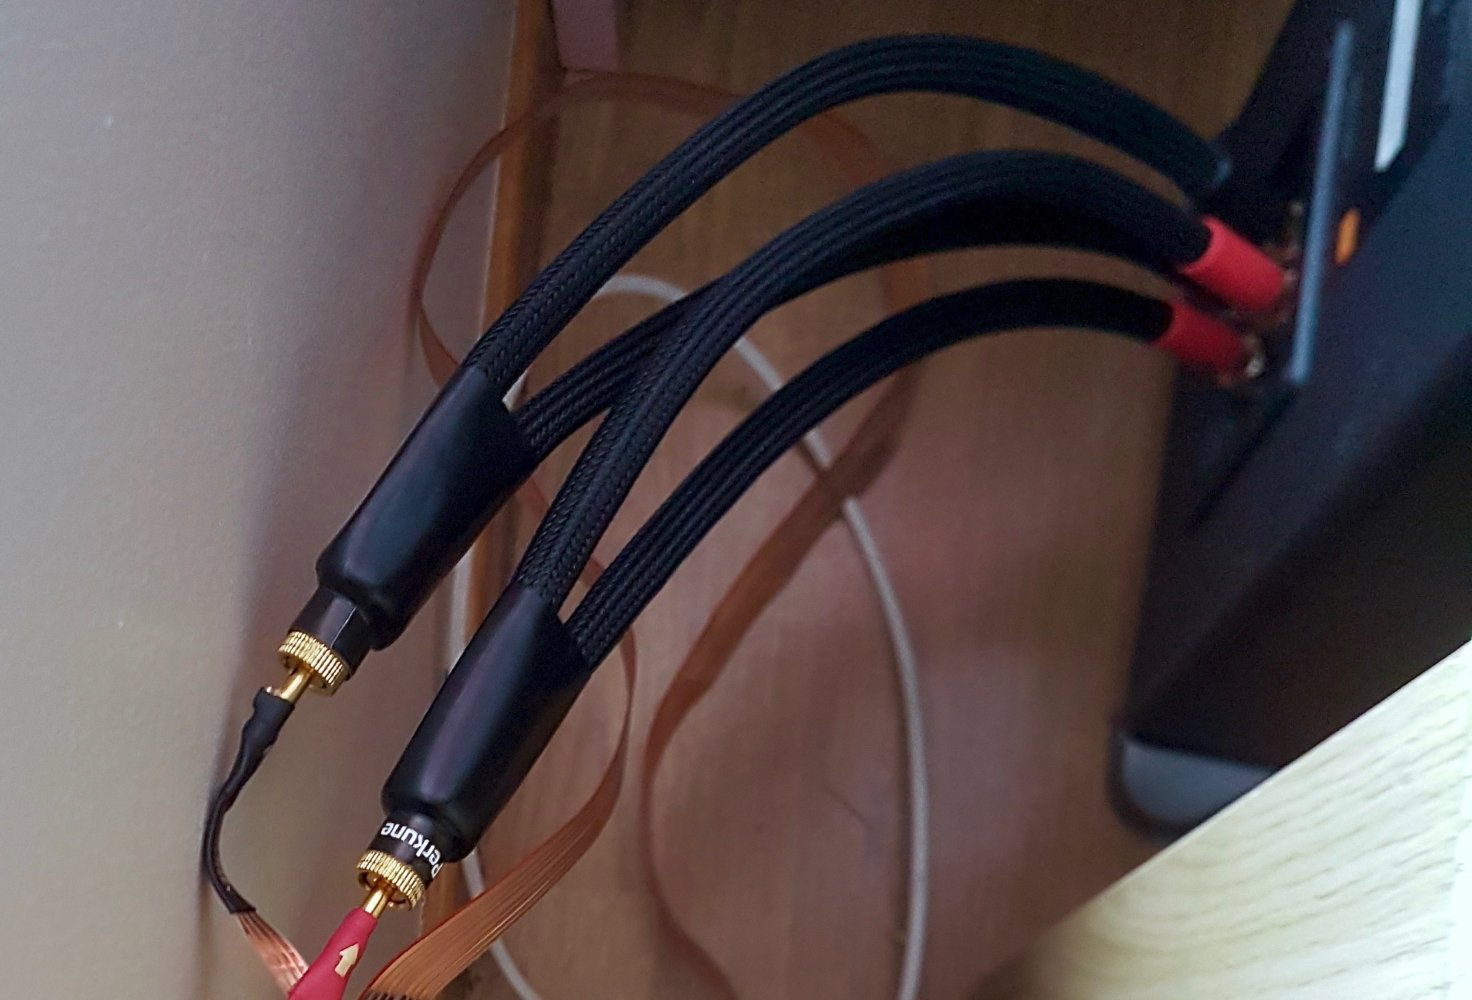 The Ultimate Bi-wired adaptor cable